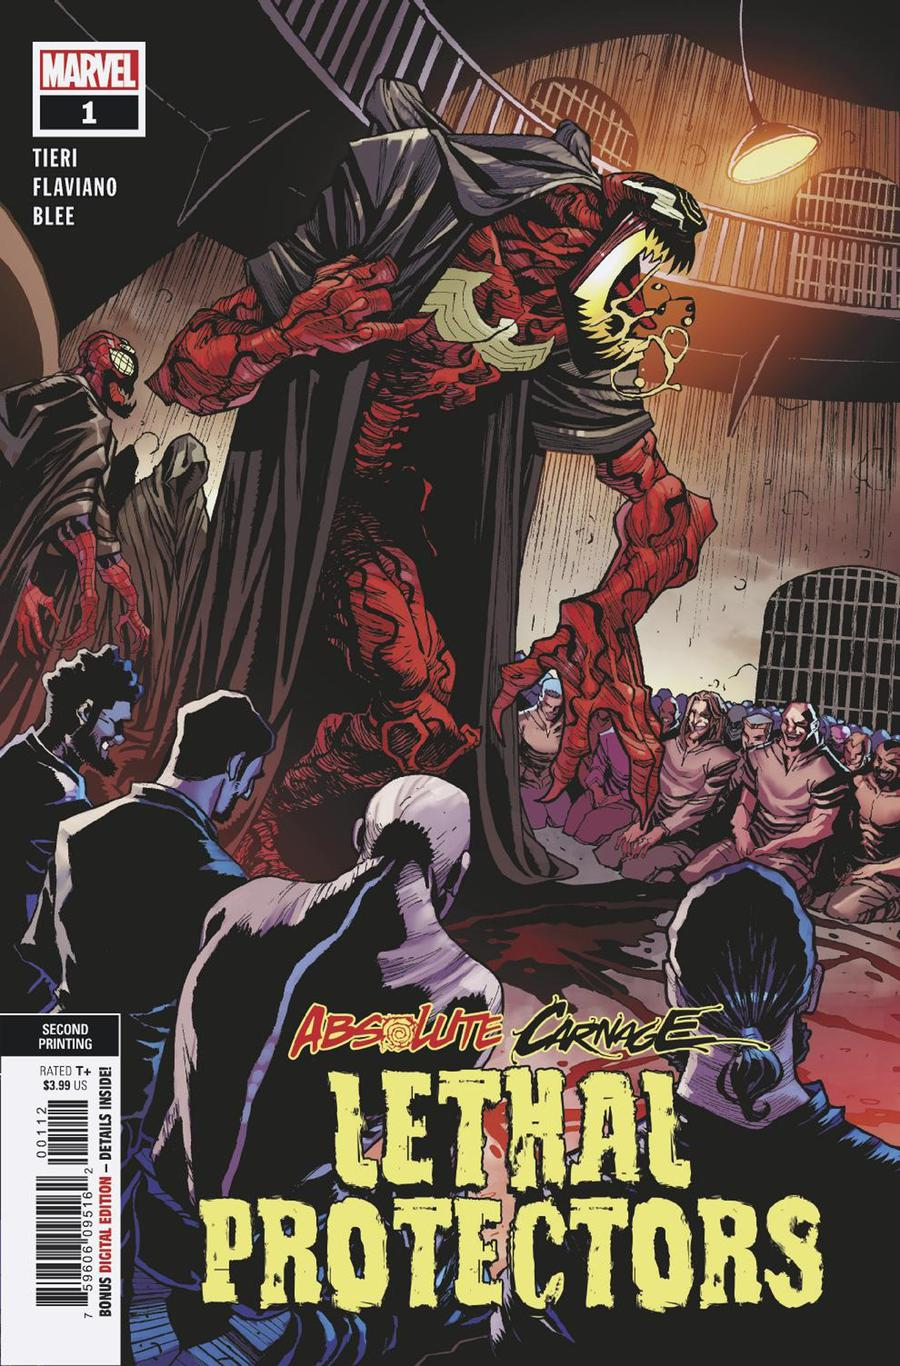 Absolute Carnage Lethal Protectors #1 Cover F 2nd Ptg Variant Flaviano Armentaro Cover